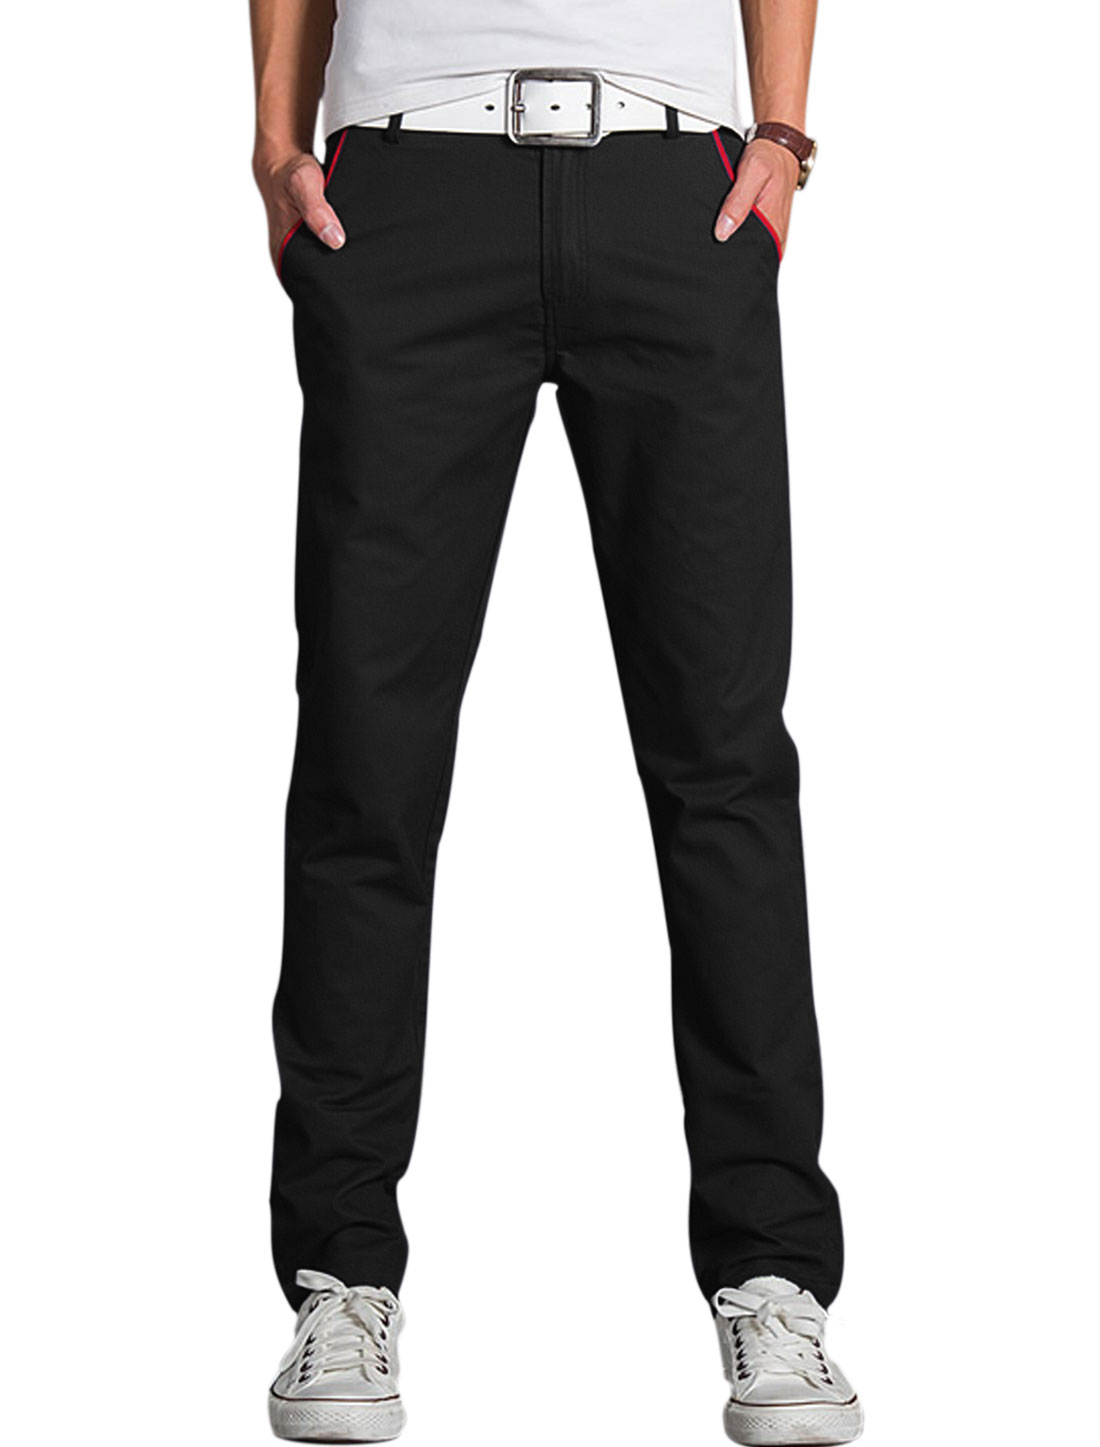 Men Mid Waist Zip Fly Contrast Color Full-Length Chinos Black W34